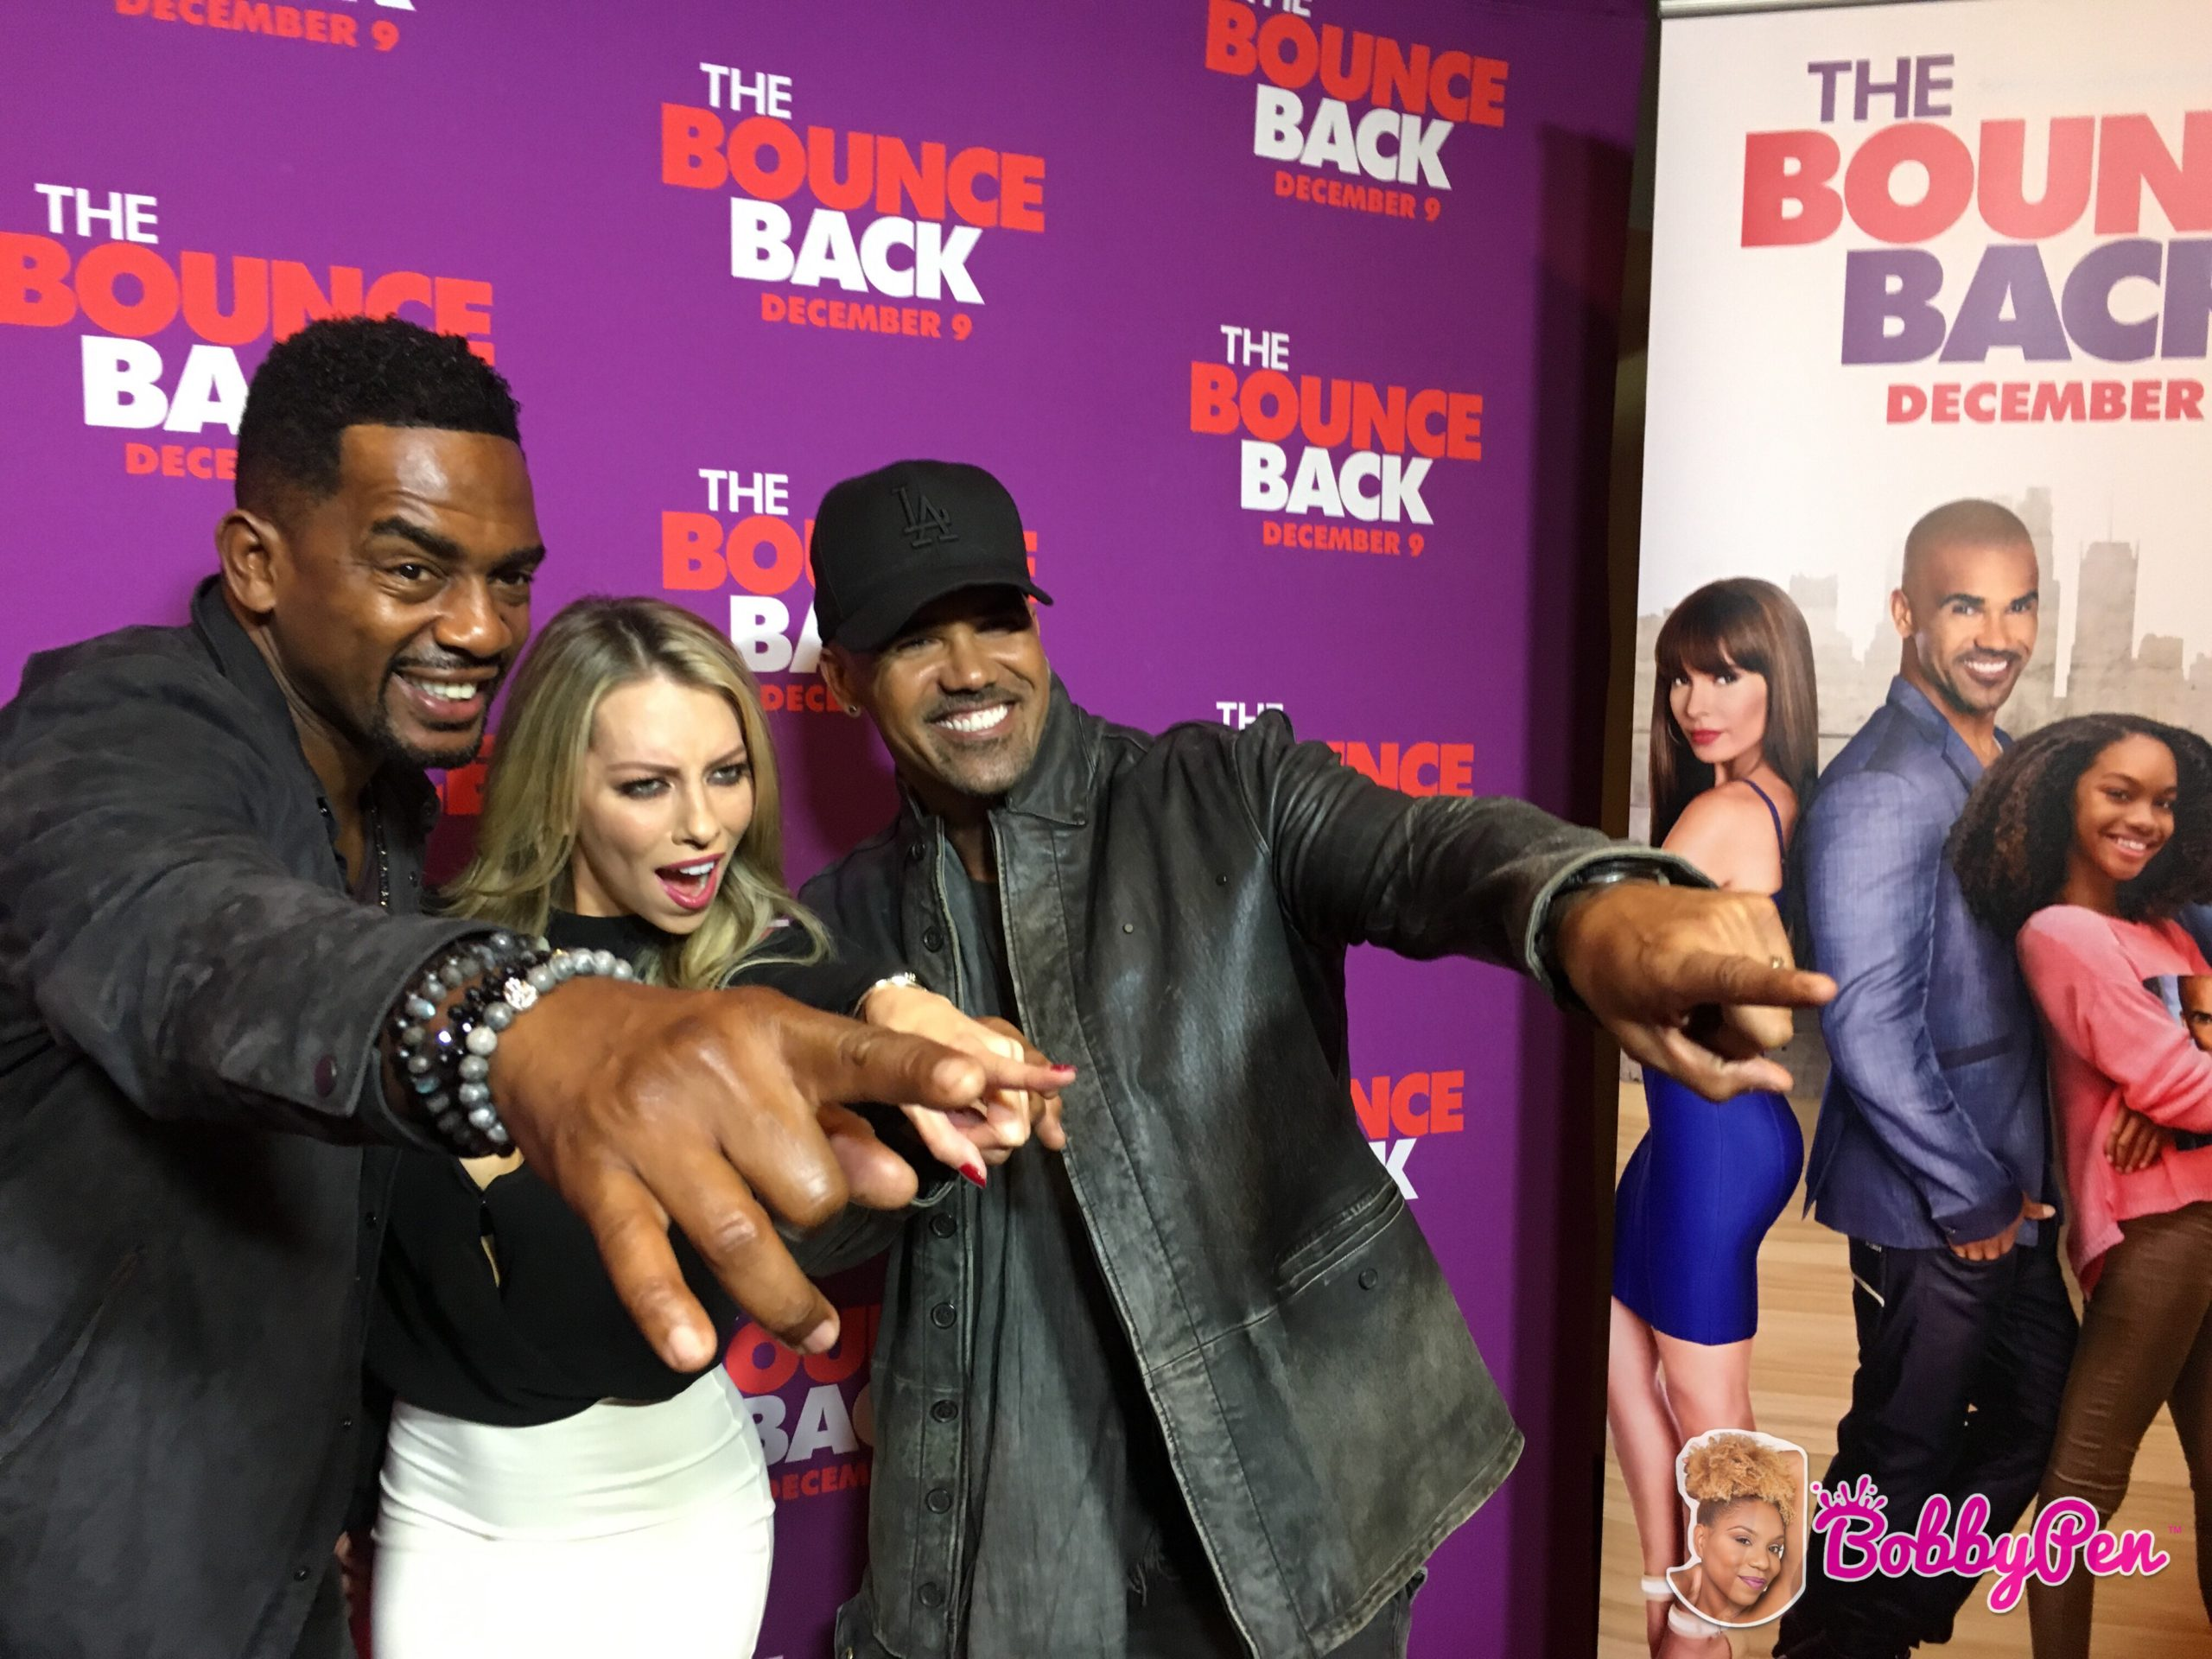 Shemar moore talks challenging hollywood new stories for people of shemar moore talks challenging hollywood new stories for people of color with the bounce back movie video thebobbypen kristyandbryce Image collections